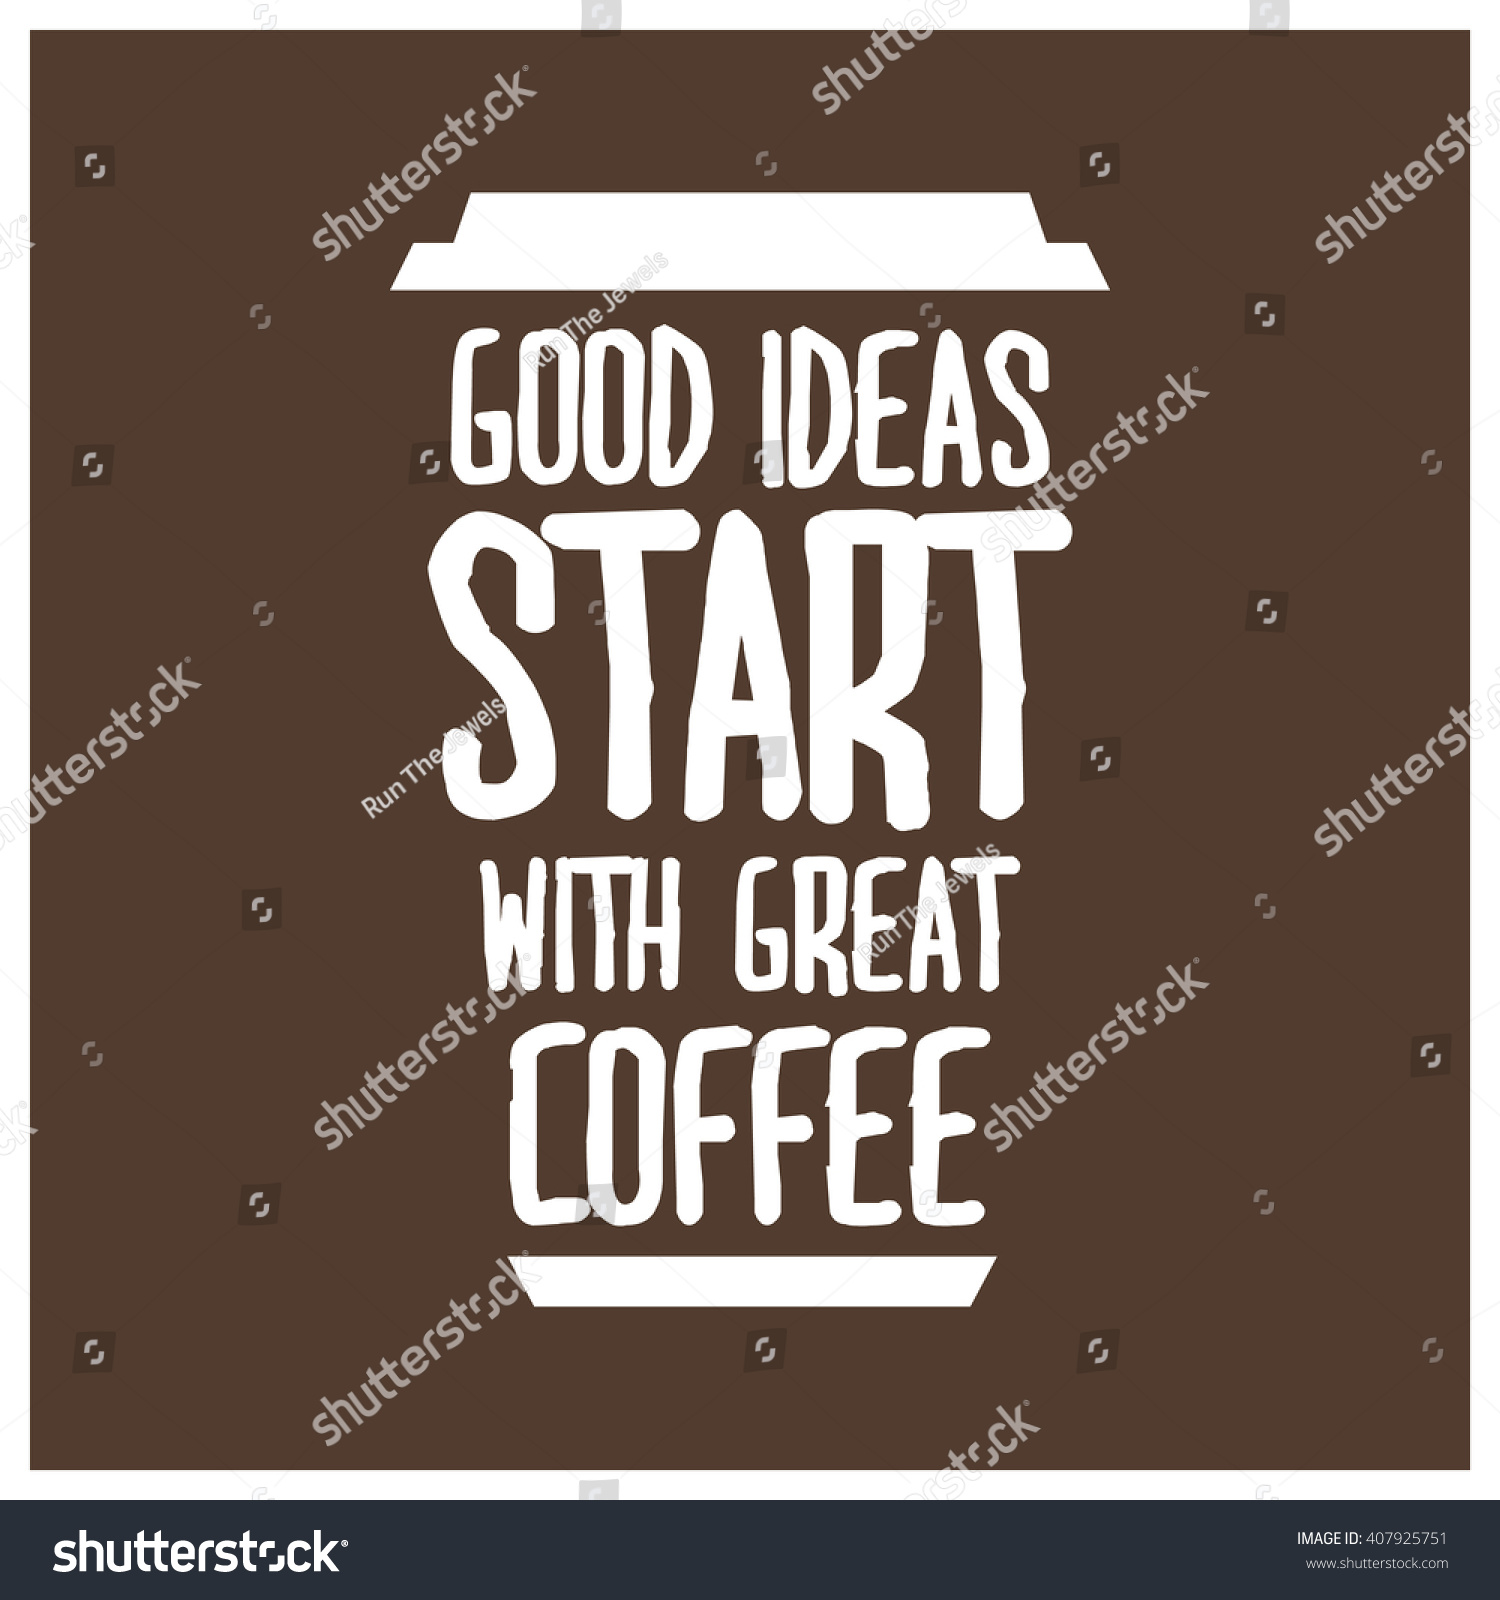 good ideas start great coffee motivational stock vector royalty